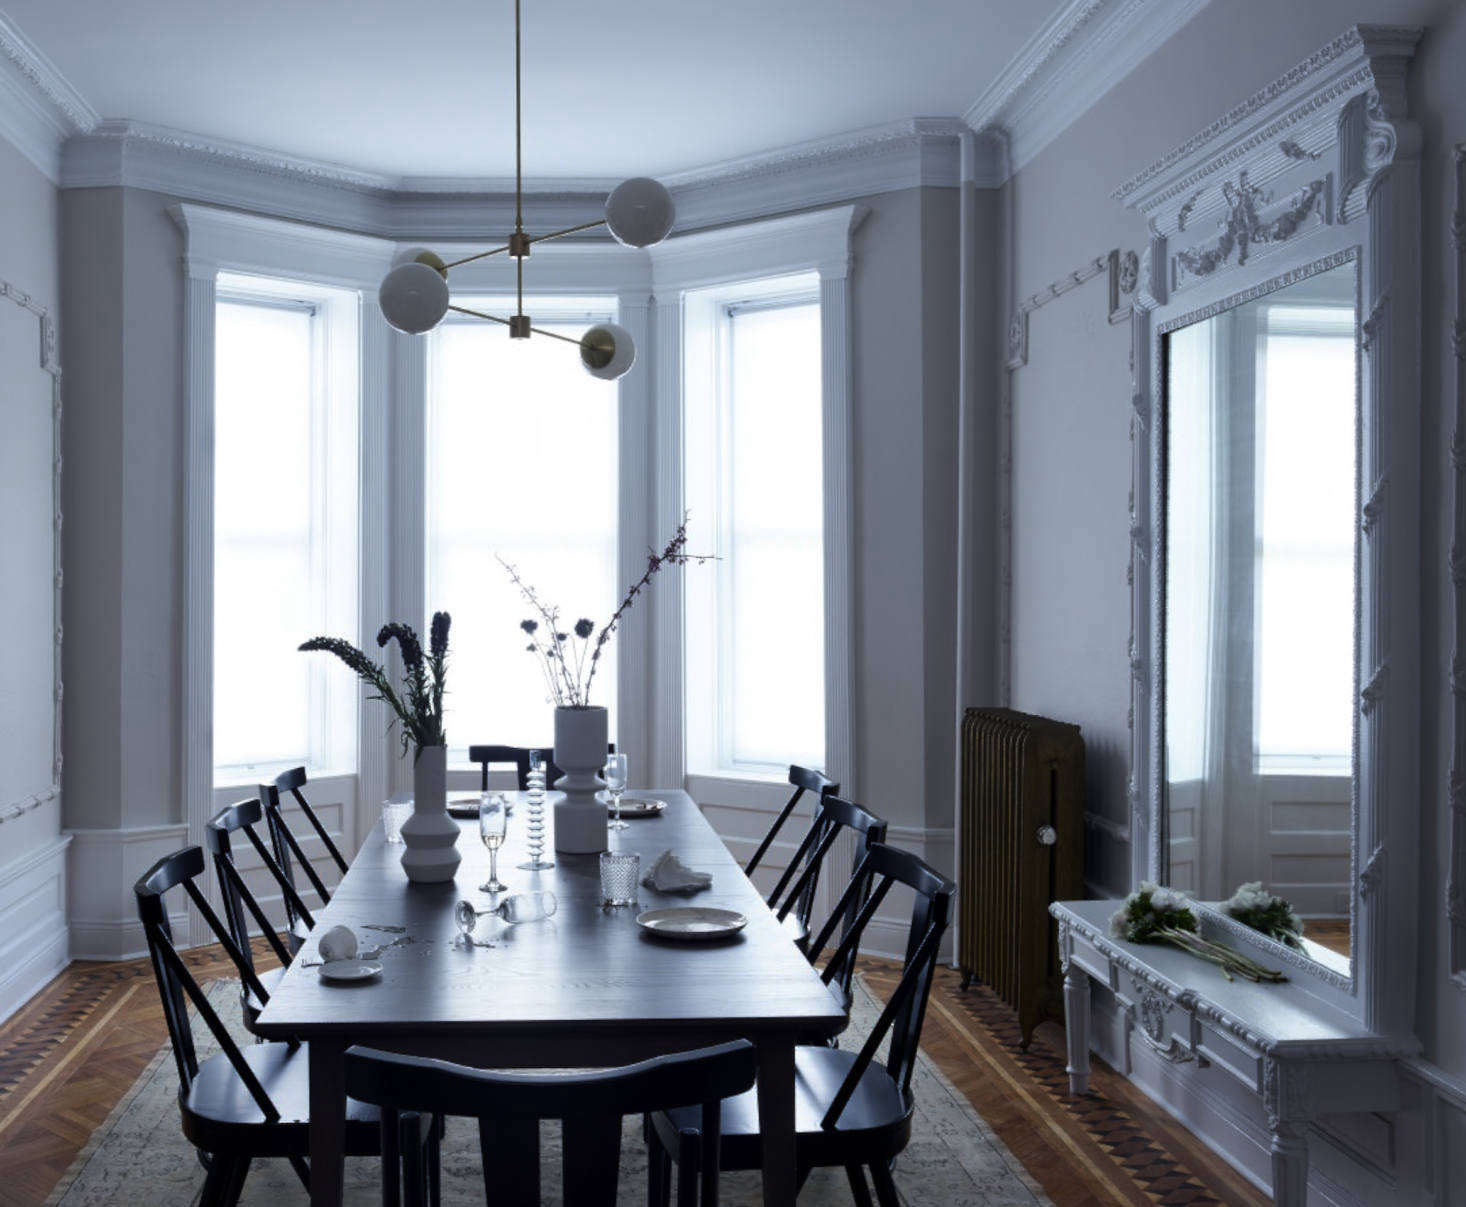 In the dining room, pale paint—Benjamin Moore's Collingwood in a matte finish at 25 percent dilution—lends a slightly ghostly feel. The molding here, including the original built-in mirror, is painted over in Benjamin Moore's Decorator's White in semi-gloss.